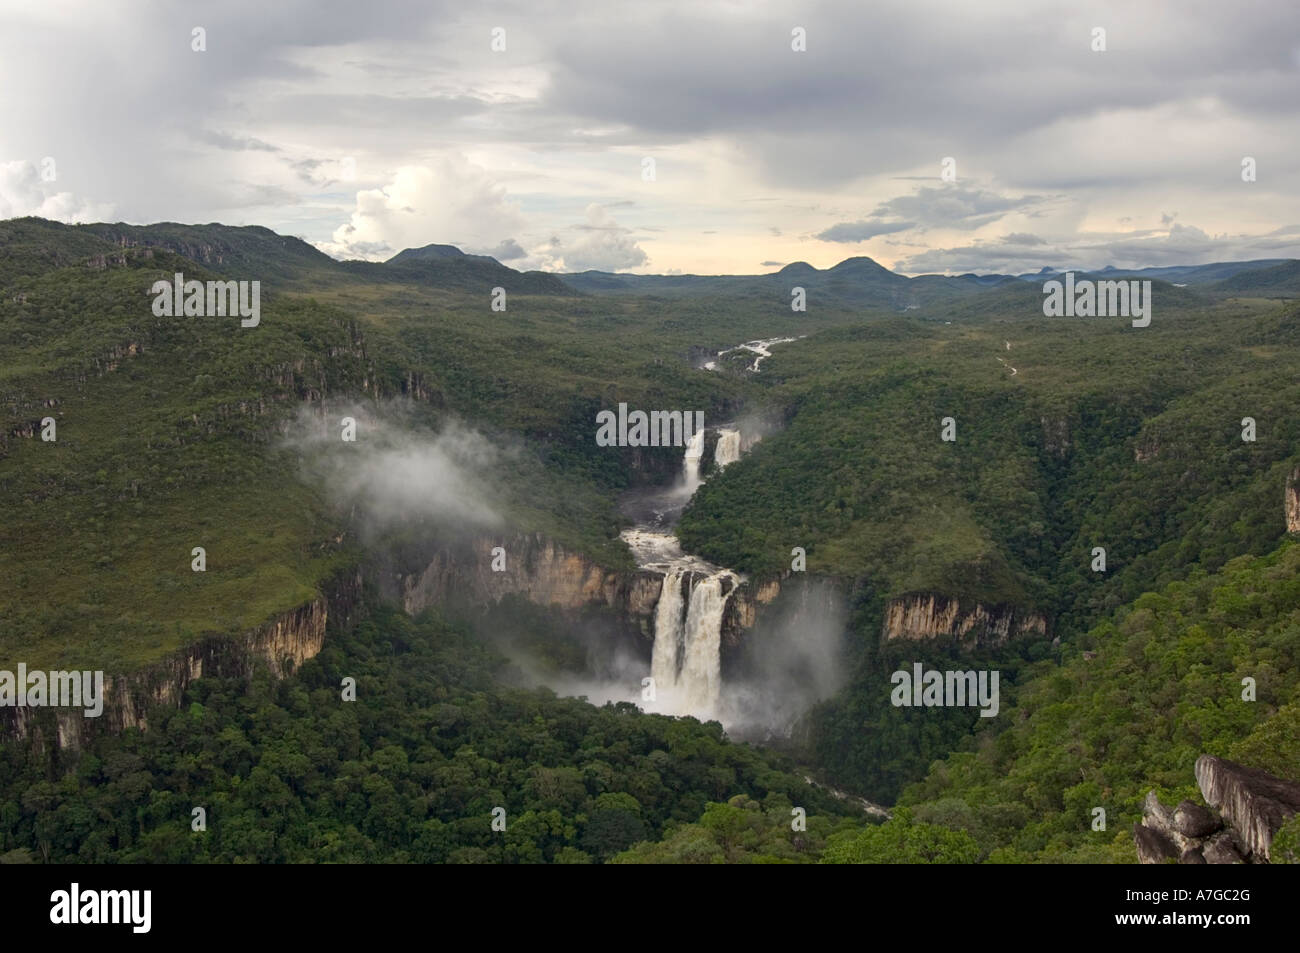 An aerial view of the two main waterfalls (the 120 and 80 meter) of The Chapada dos Veadeiros National Park in Brazil. - Stock Image